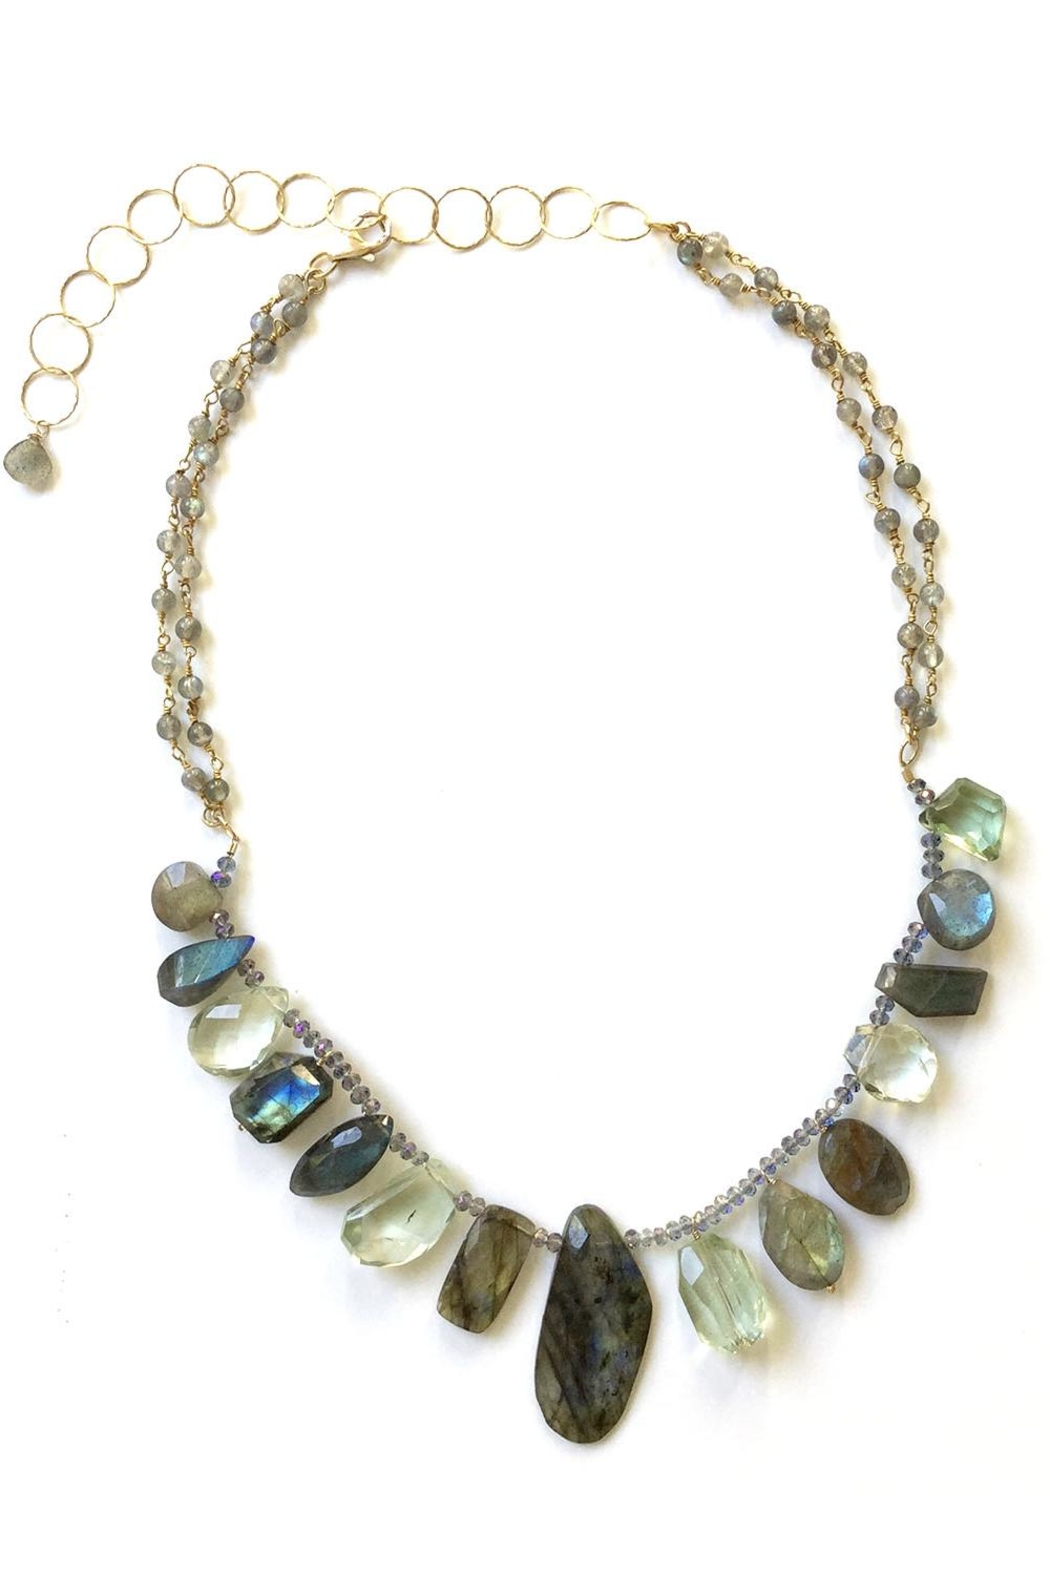 Susan Goodwin Jewelry Labradorite & Amethyst Necklace - Main Image